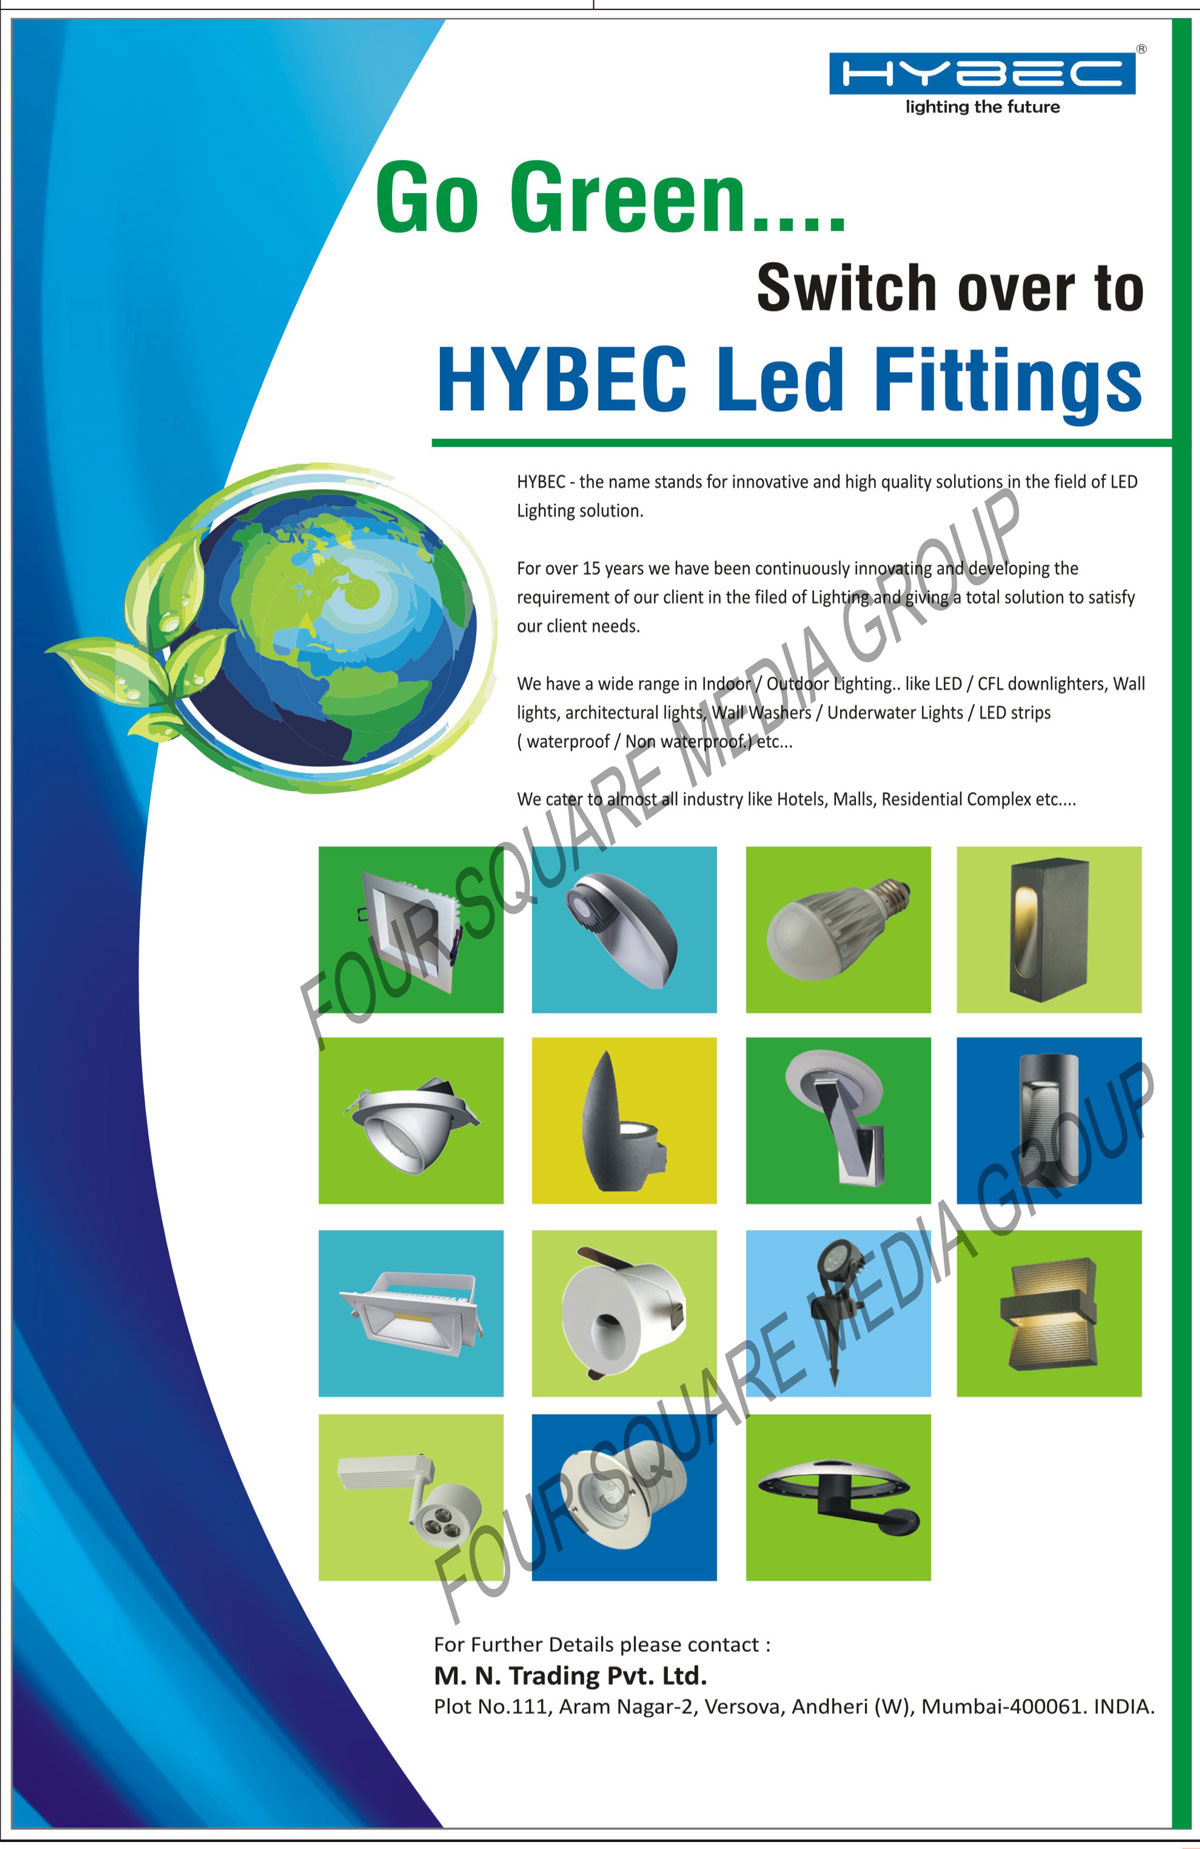 Indoor Lights, Outdoor Lights, Residential Lights, Commercial Lights, Hospitality Lights, Architectural Lights, Led Lights, Led Down lights, Led Wall Lights, Led Wall Washers, Led Underwater Lights, Led Strips, CFL Down lights, Led Products, Ceiling Lamps, Down Lighters, Spot Lights, Outdoor Lights, Suspended Lights, Wall Lamps